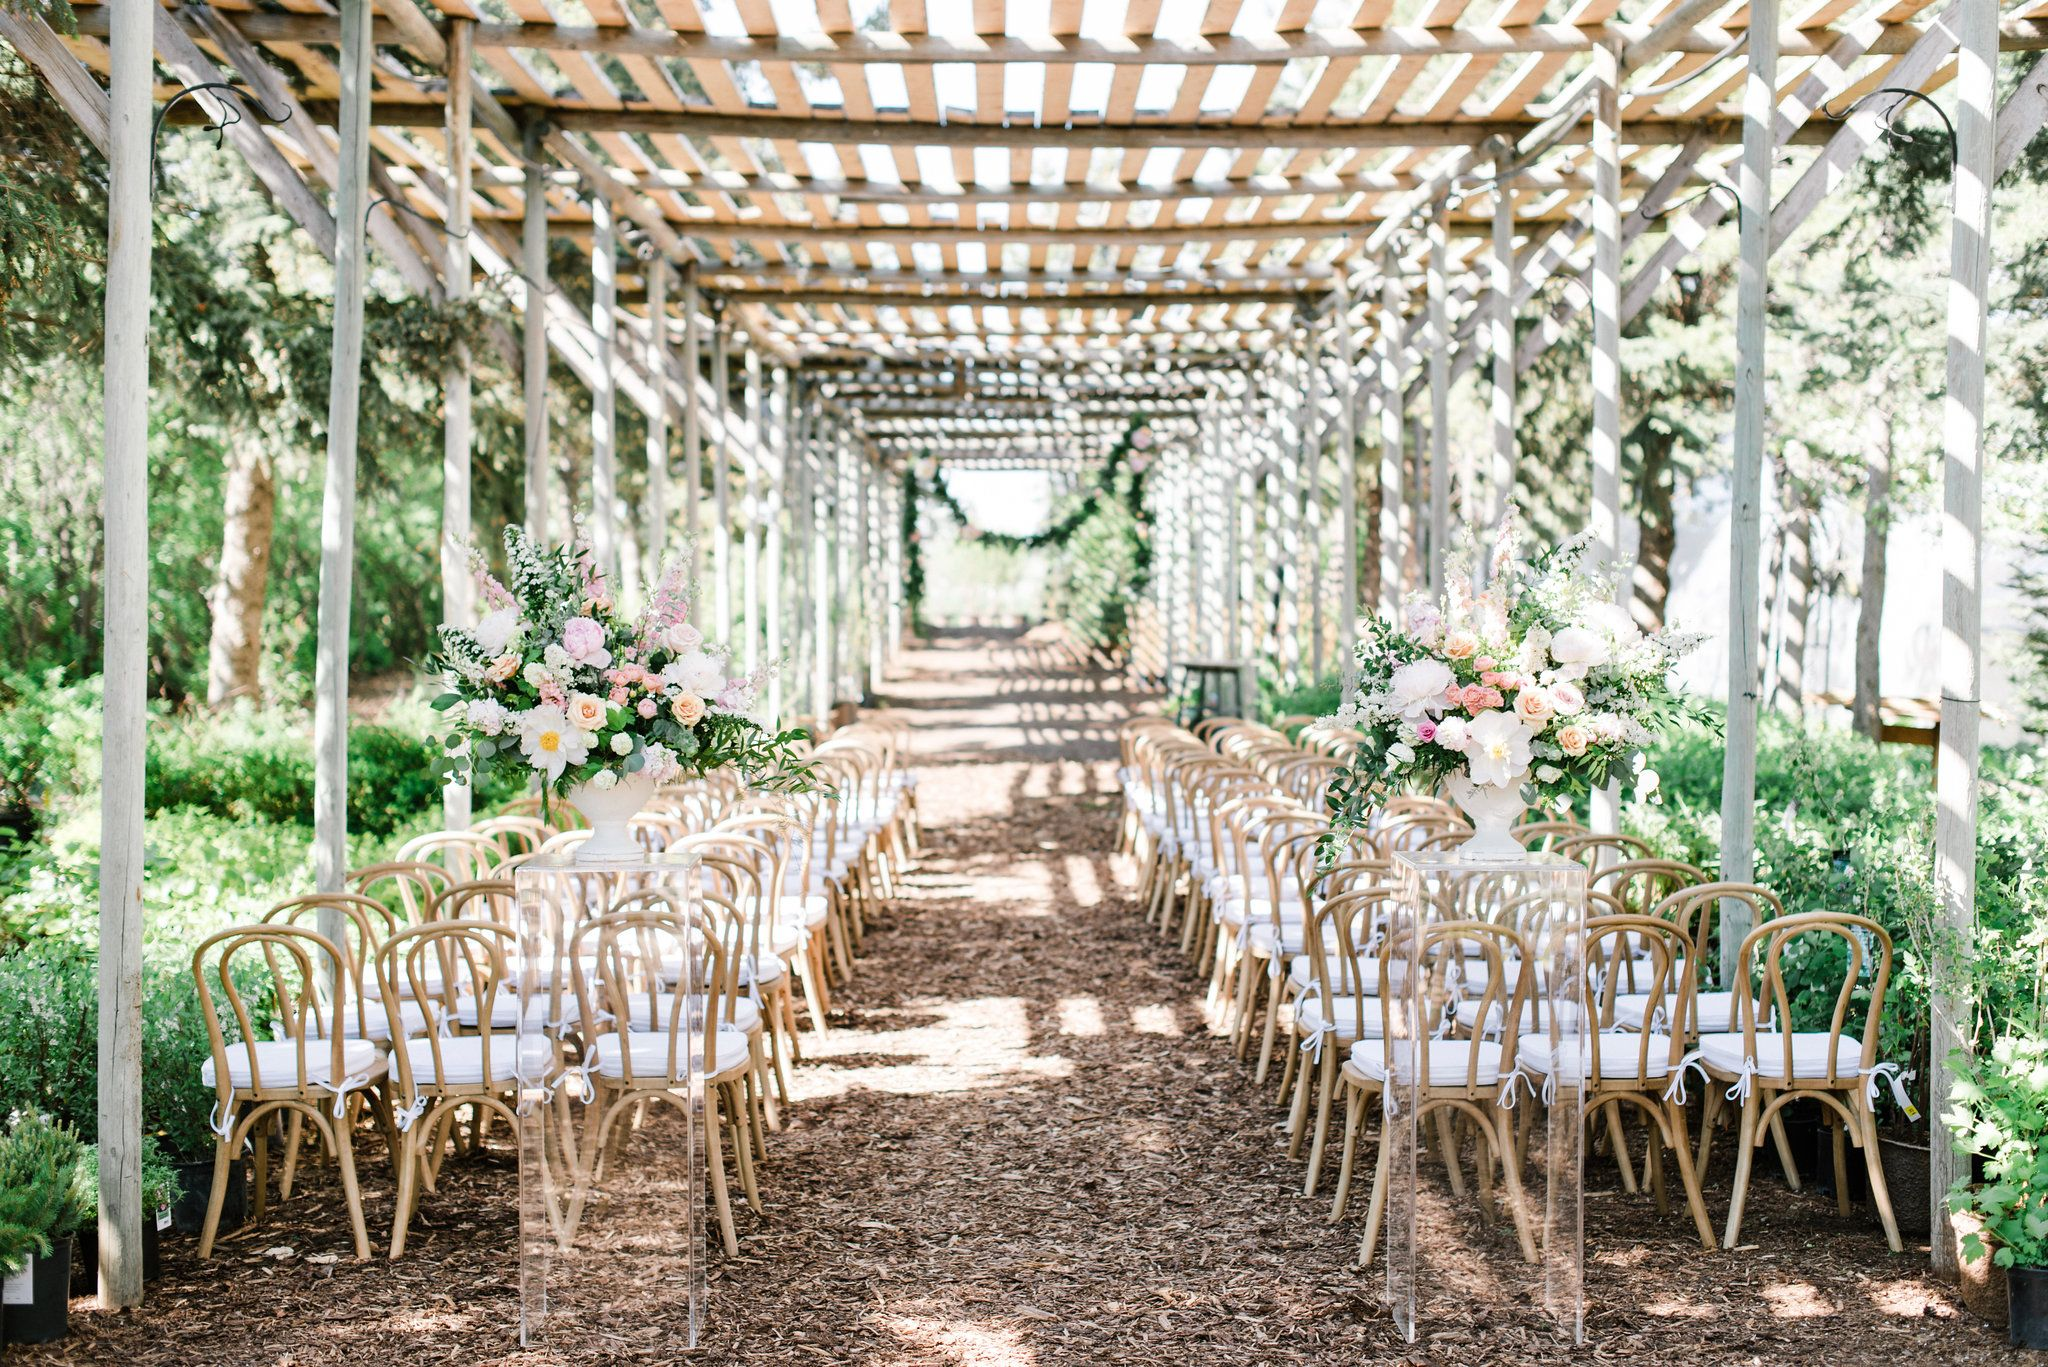 Outdoor Wedding Ceremony At The Saskatoon Farm With Hanging Floral